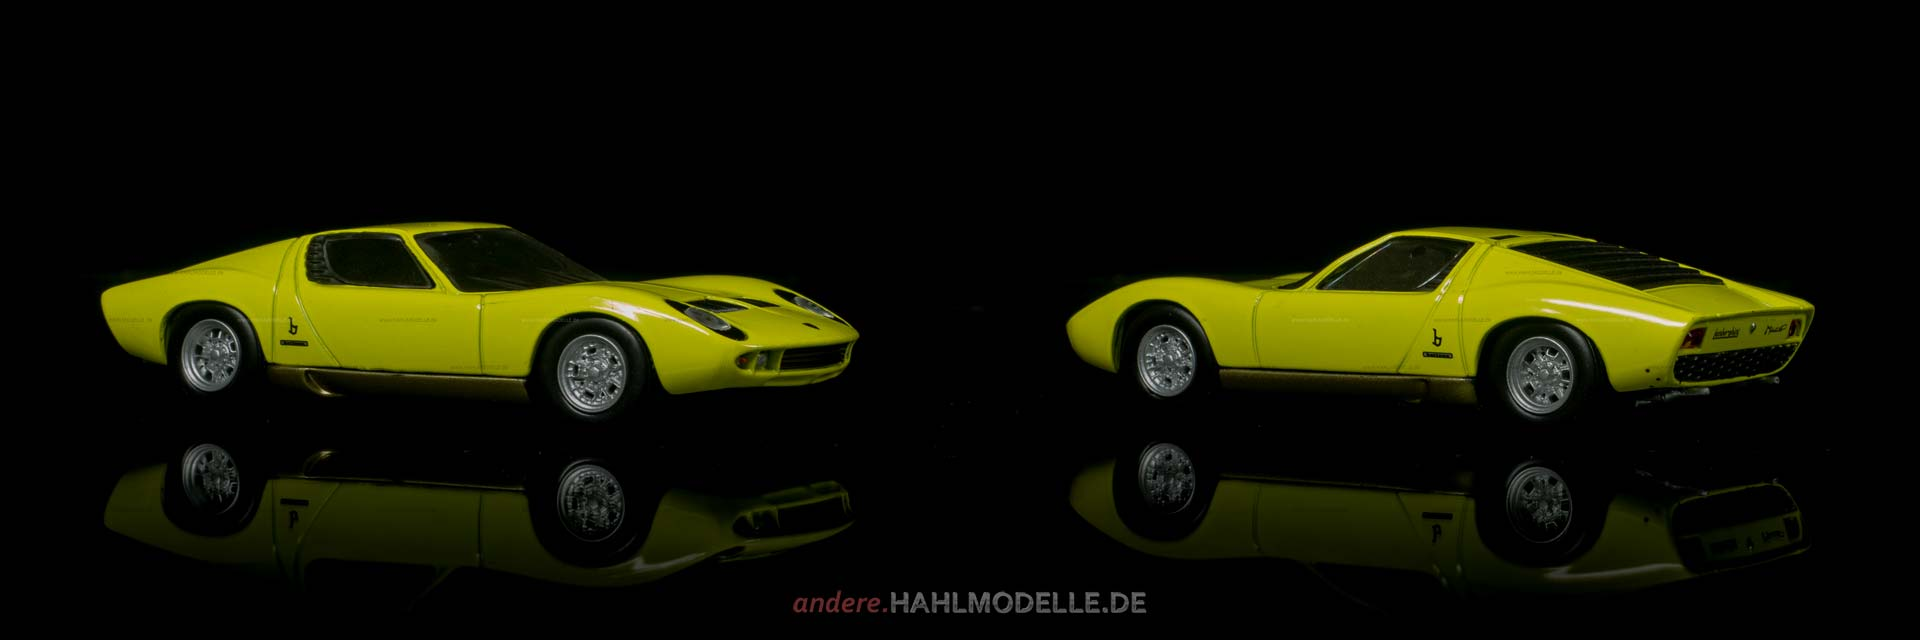 Lamborghini Miura | Coupé | Ixo (Del Prado Car Collection) | 1:43 | www.andere.hahlmodelle.de